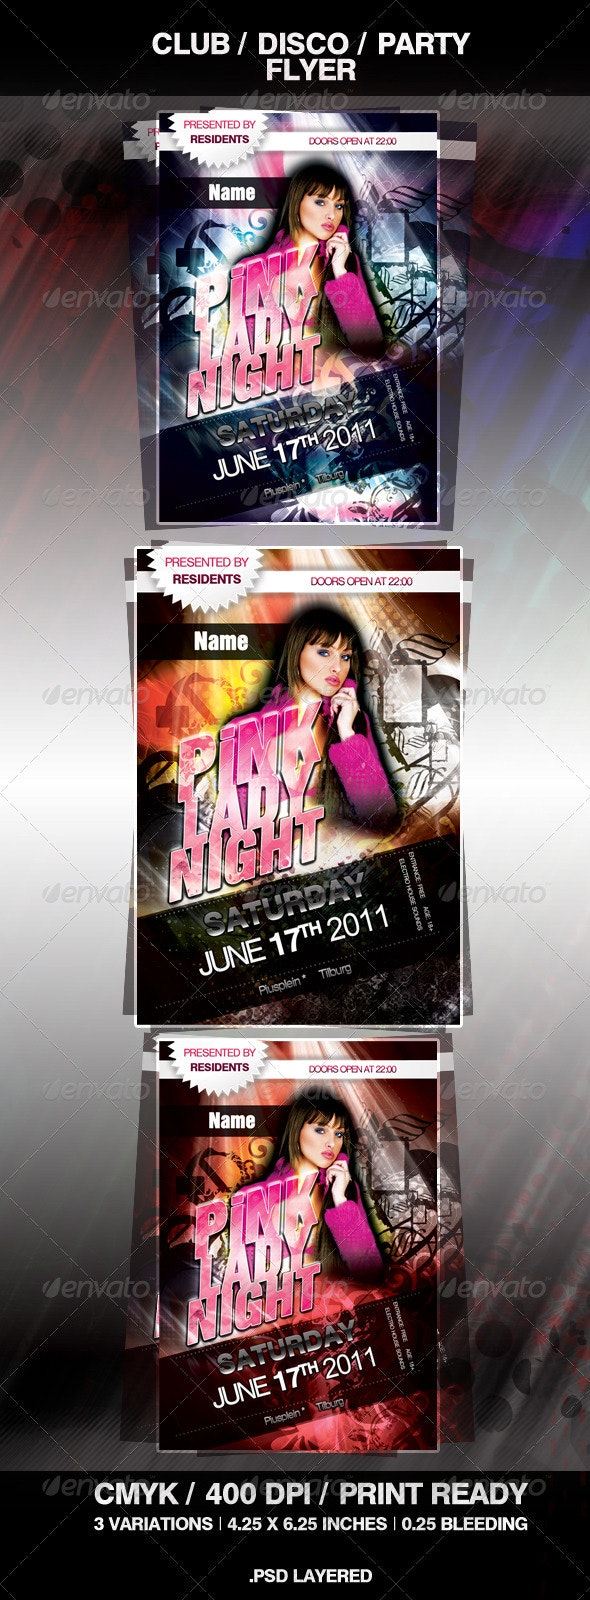 Disco Club Party Flyer - Clubs & Parties Events